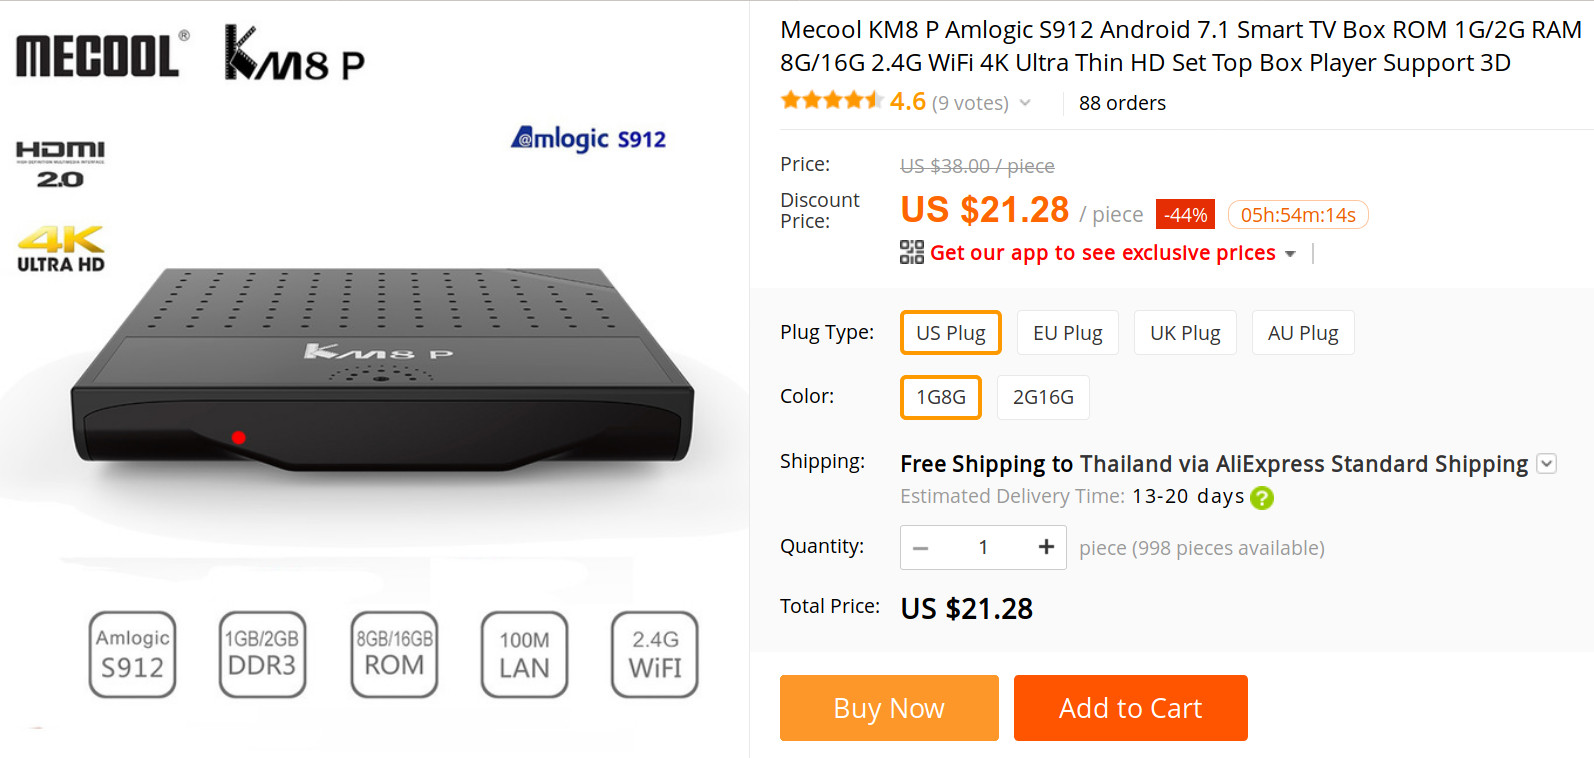 MECOOL KM8 P Octa-core TV Box Sells for $21 and Up (Promo)